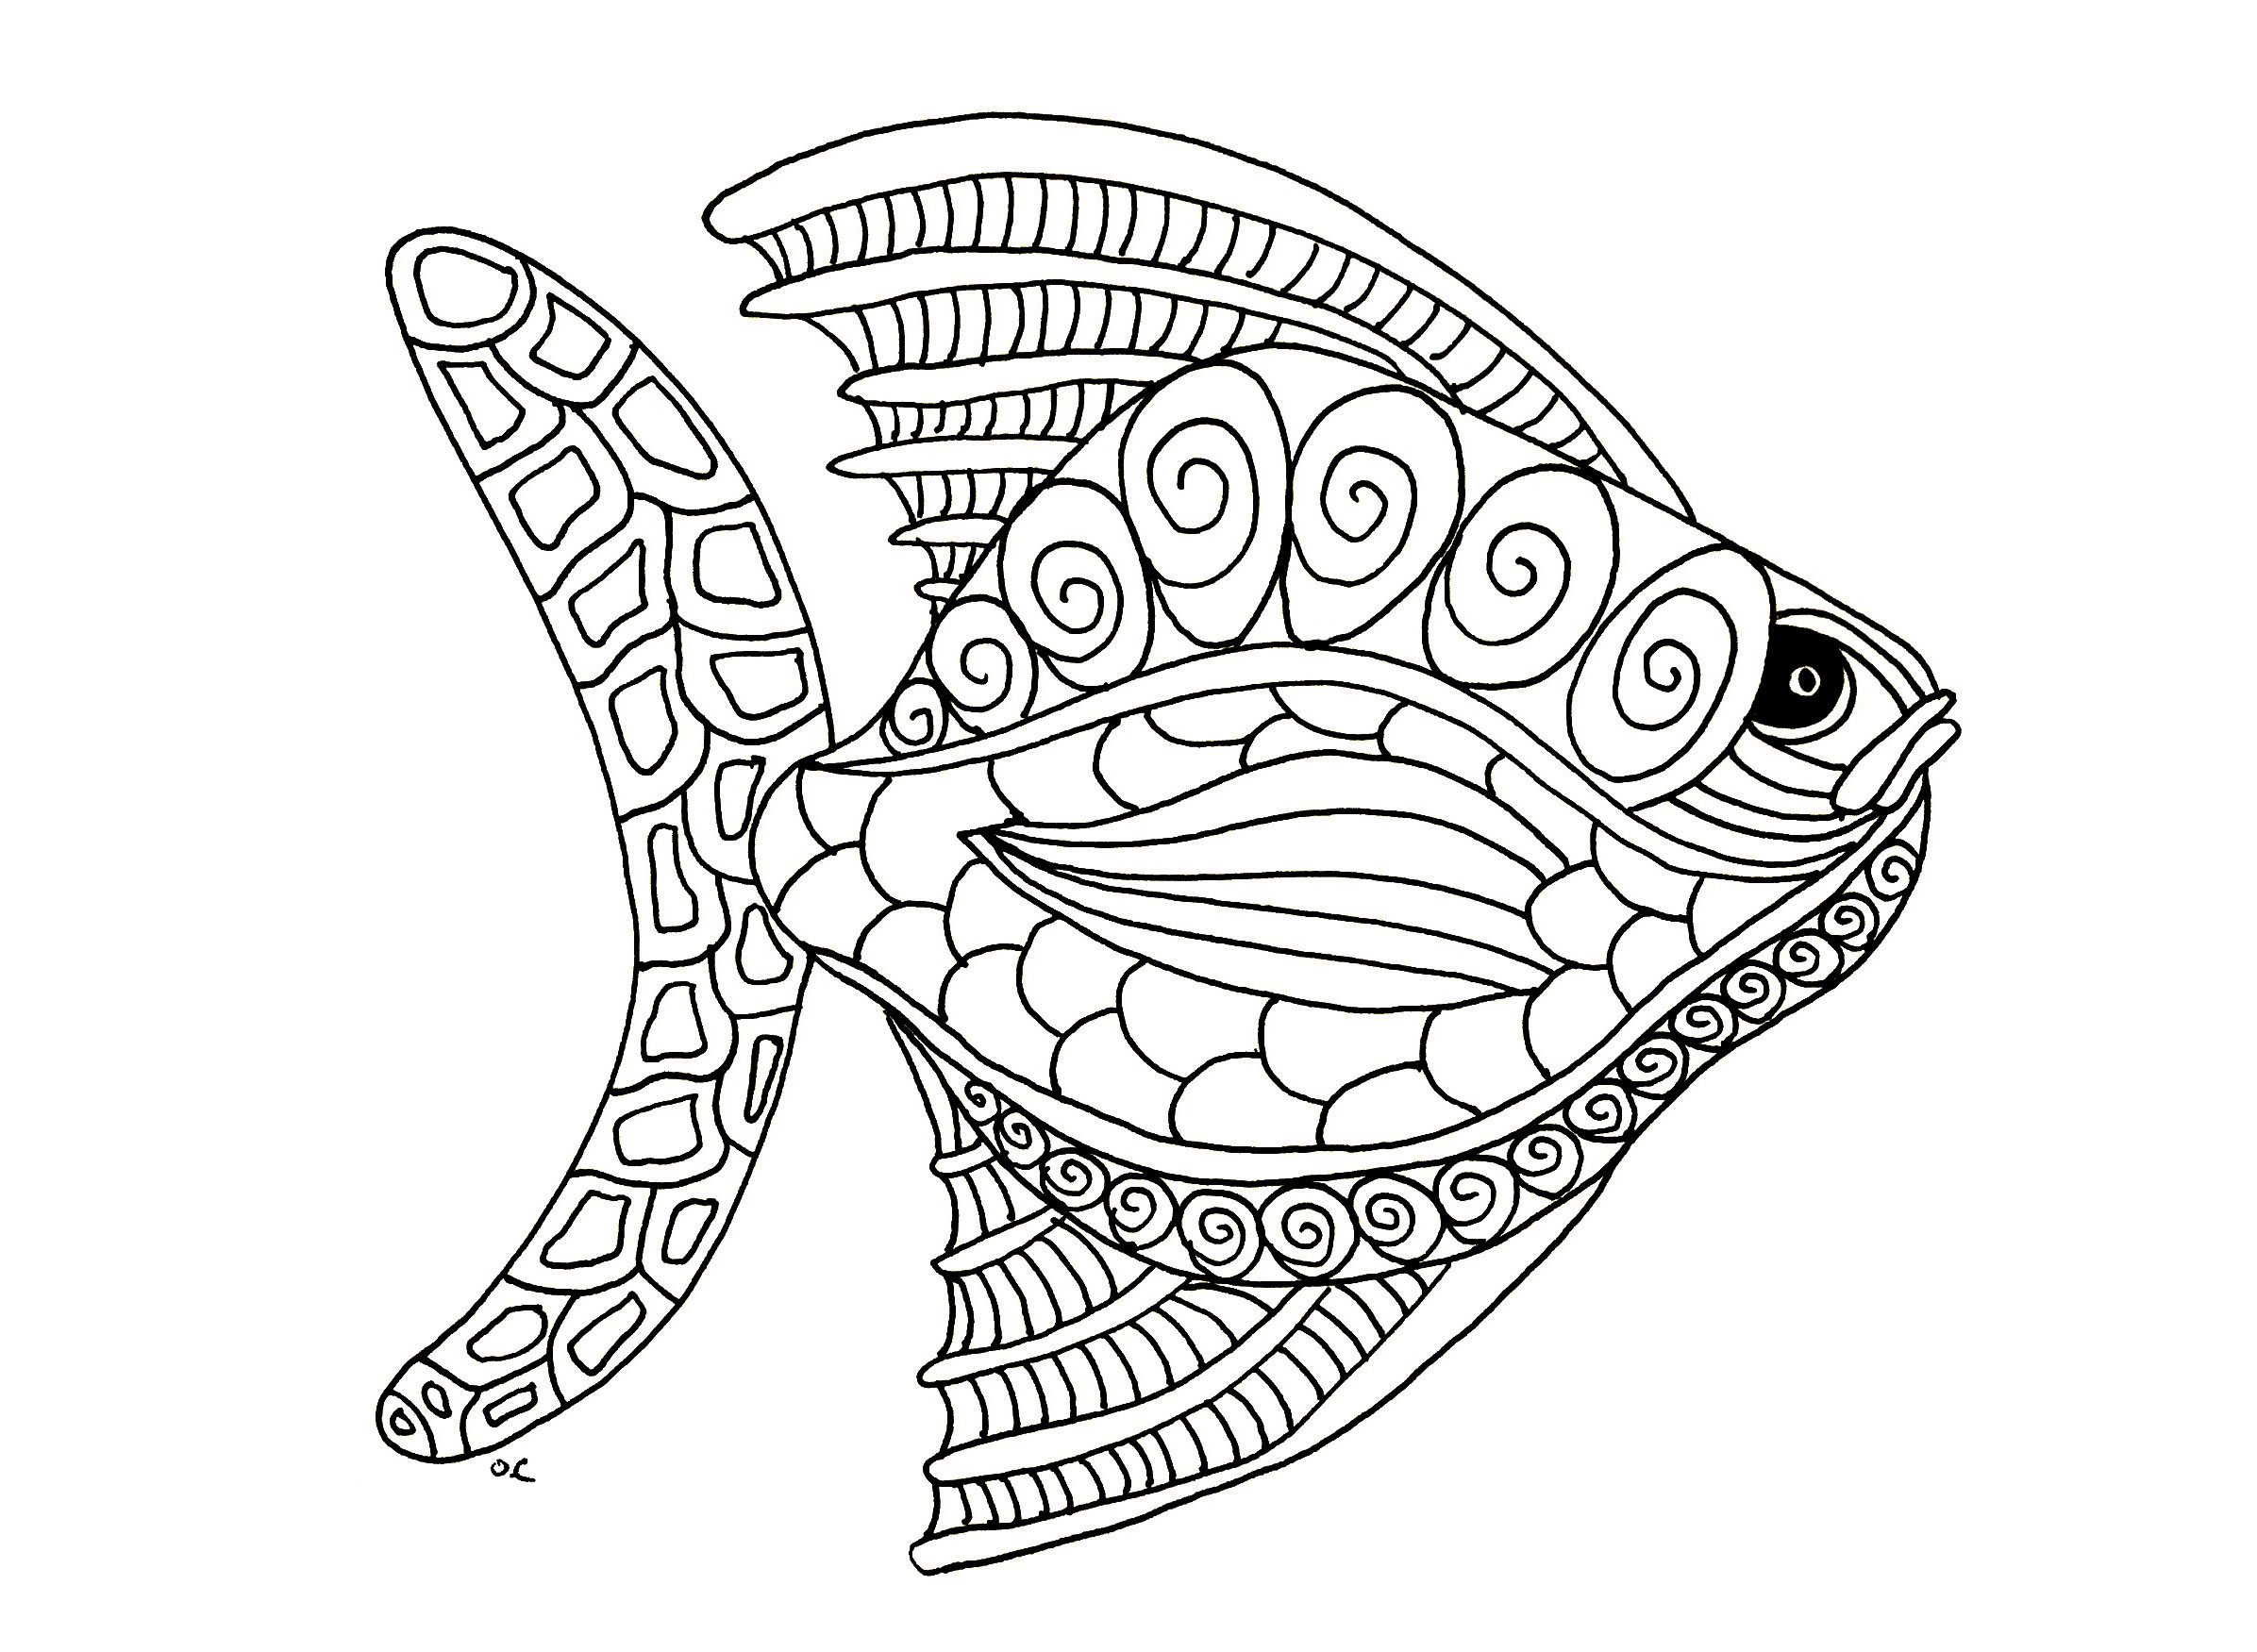 Poisson style zentangle version 1 coloriage de poissons - Dessin poisson ...